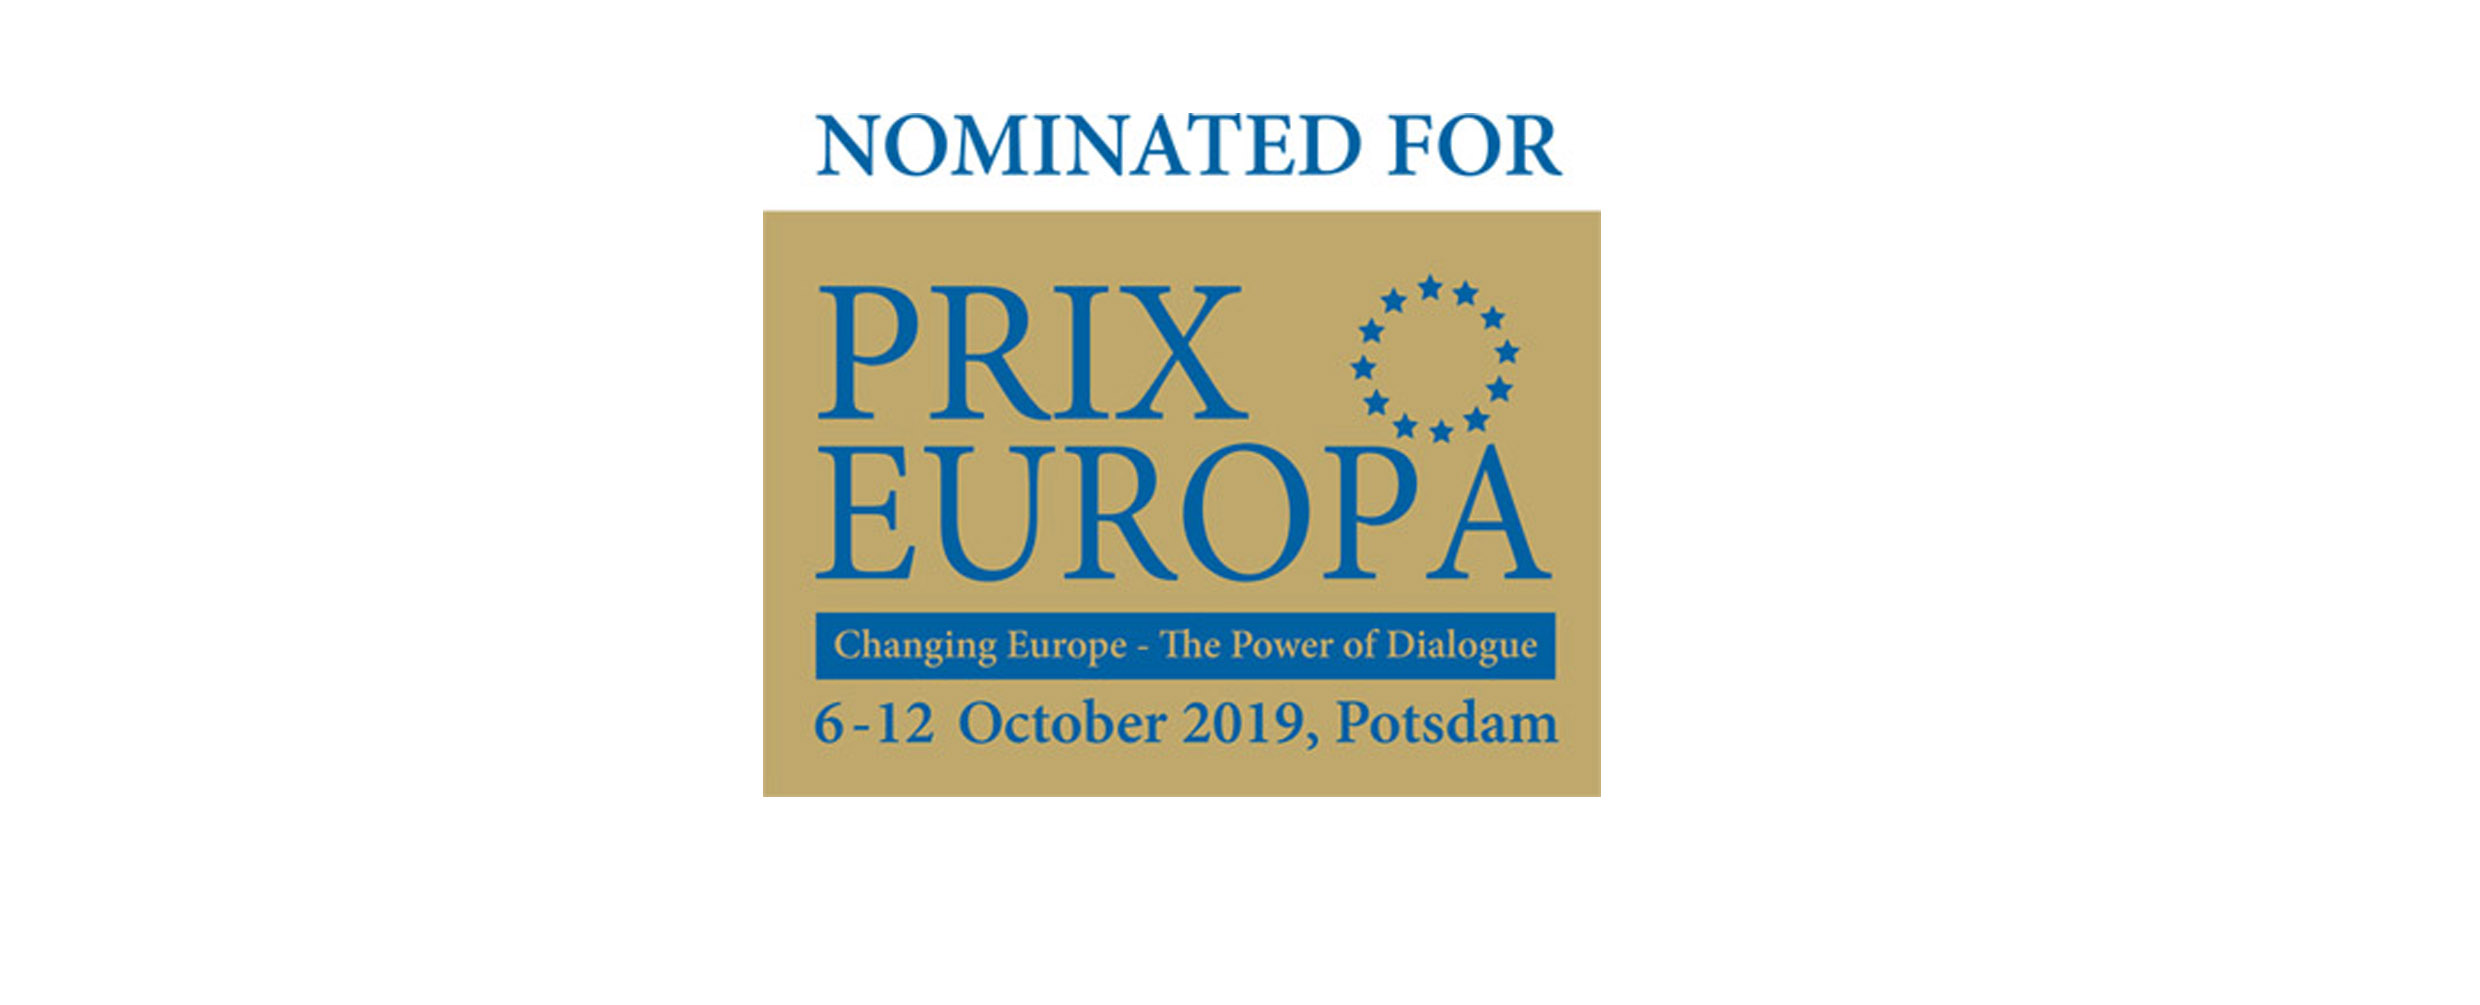 Nominated_2019_PrixEuropa_Laurel_web.jpg